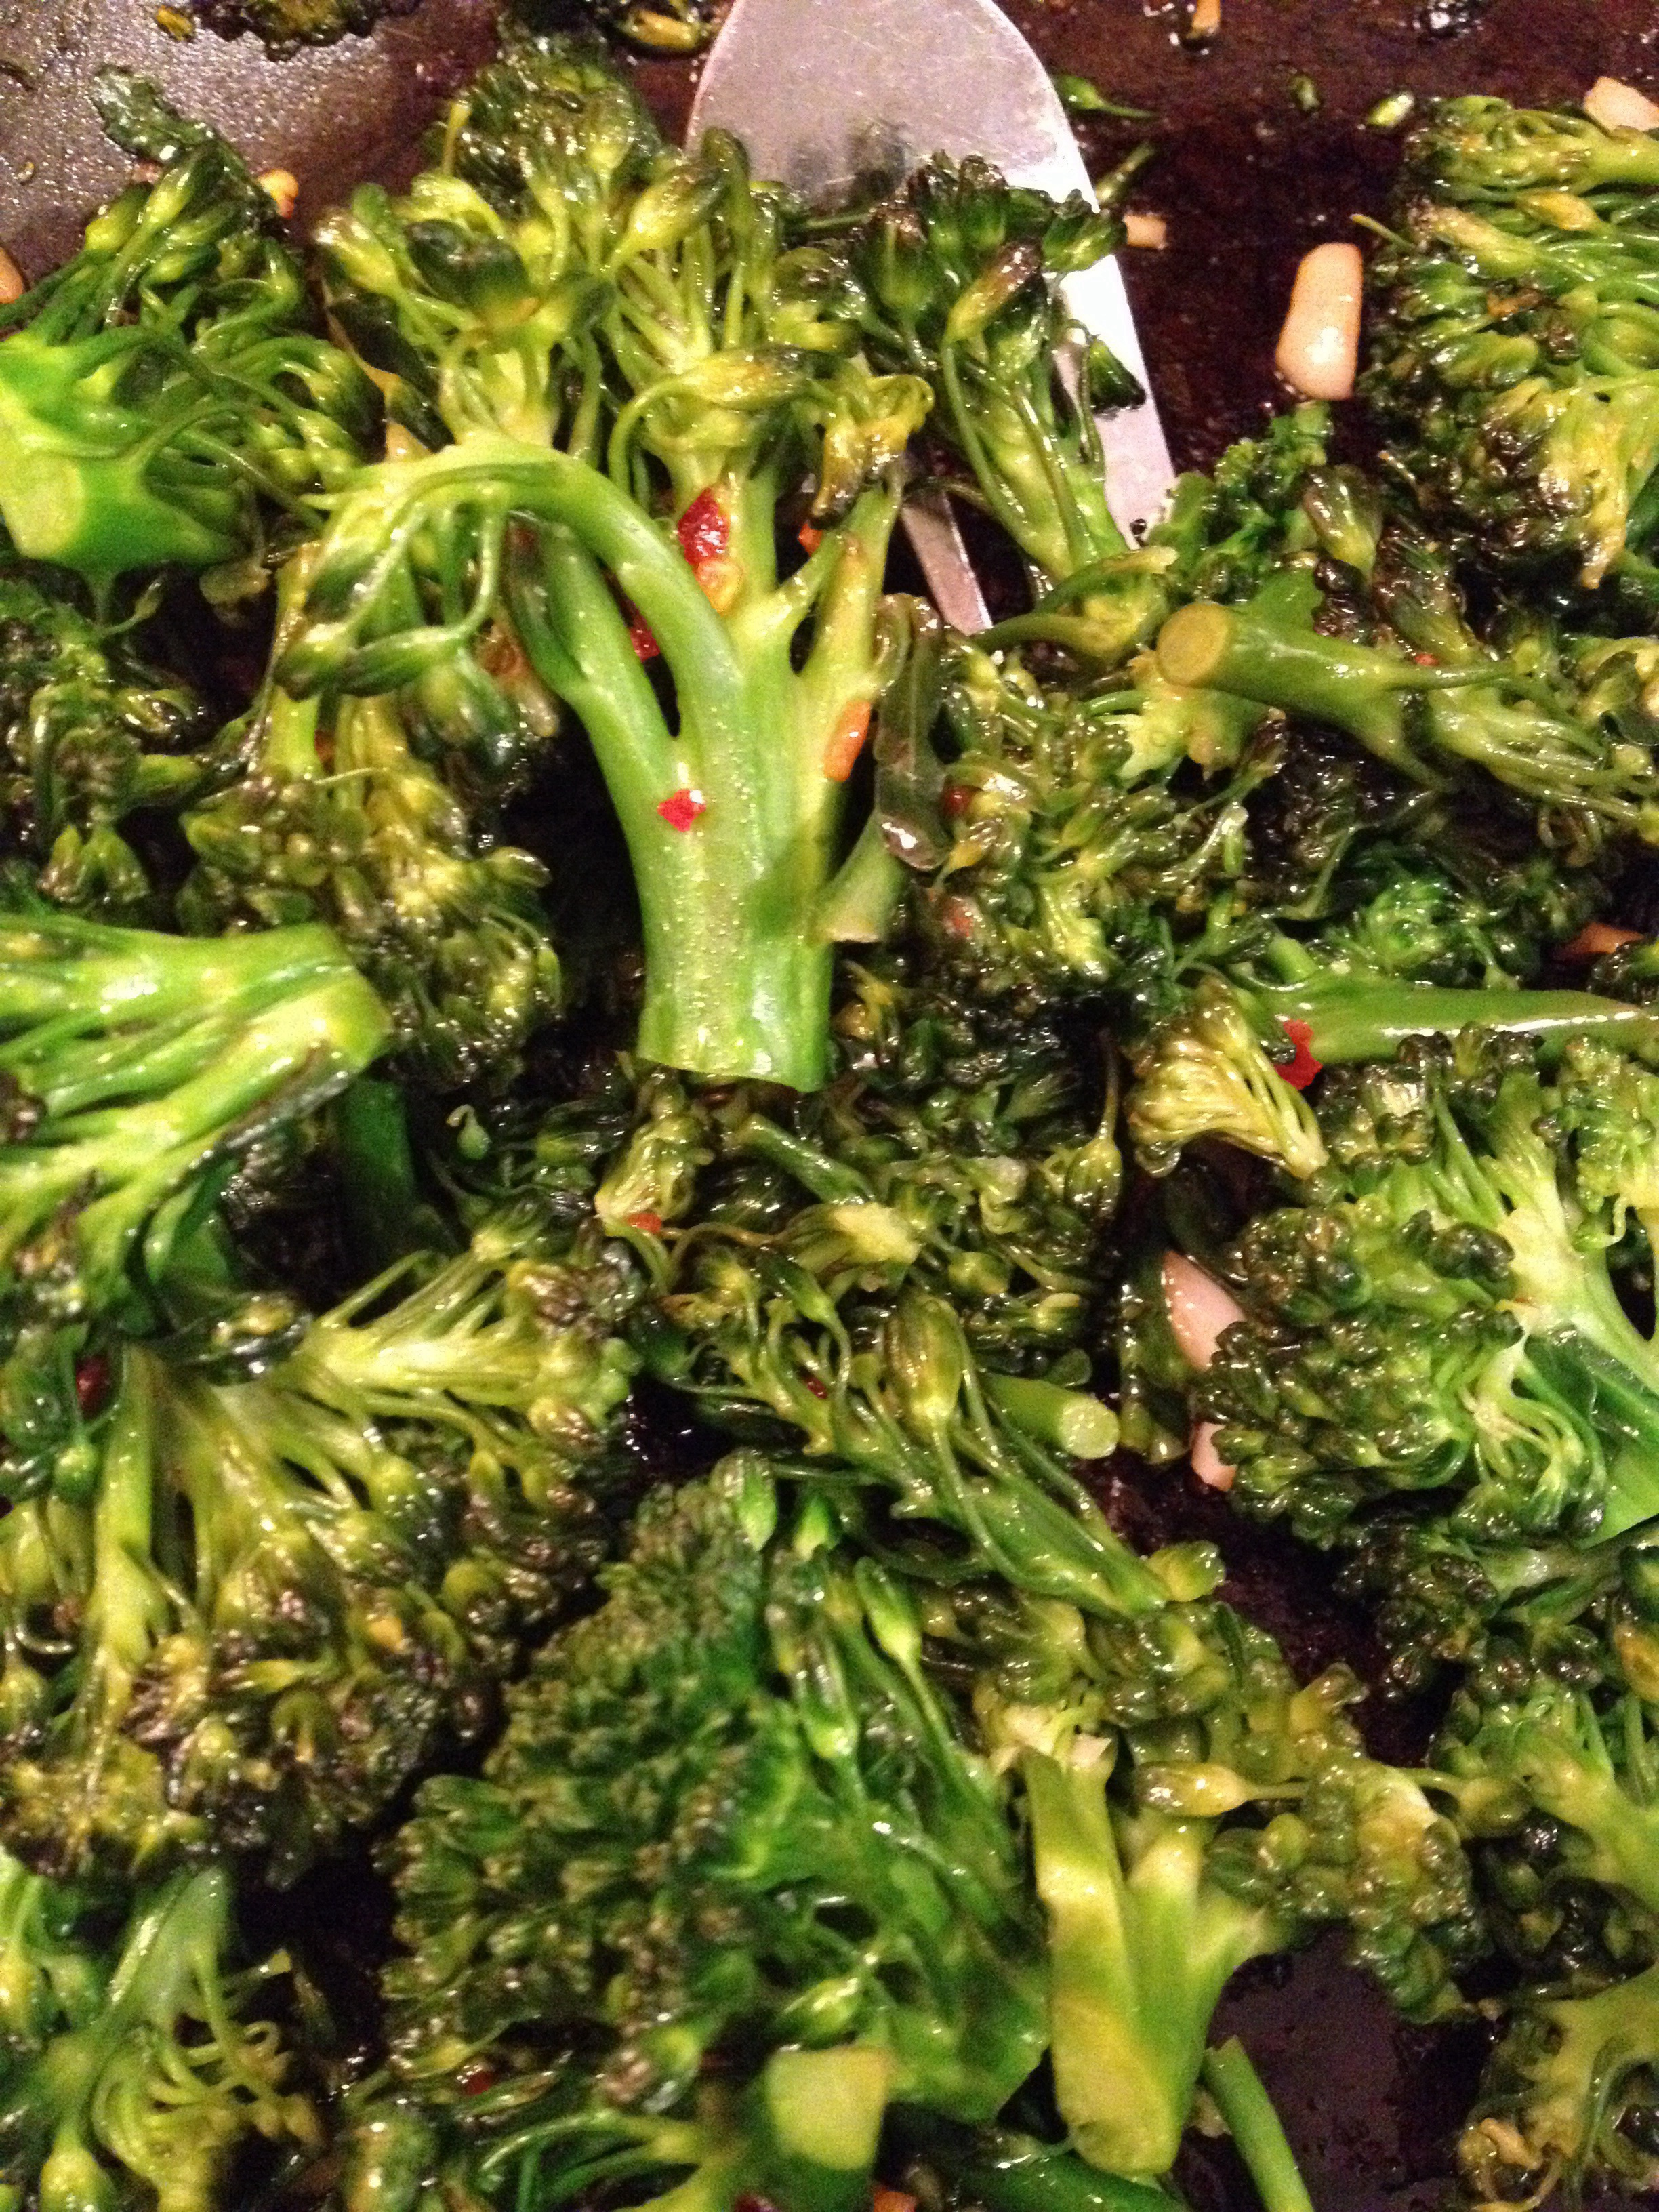 Spicy Broccoli Rabe Bruschetta Recipes — Dishmaps